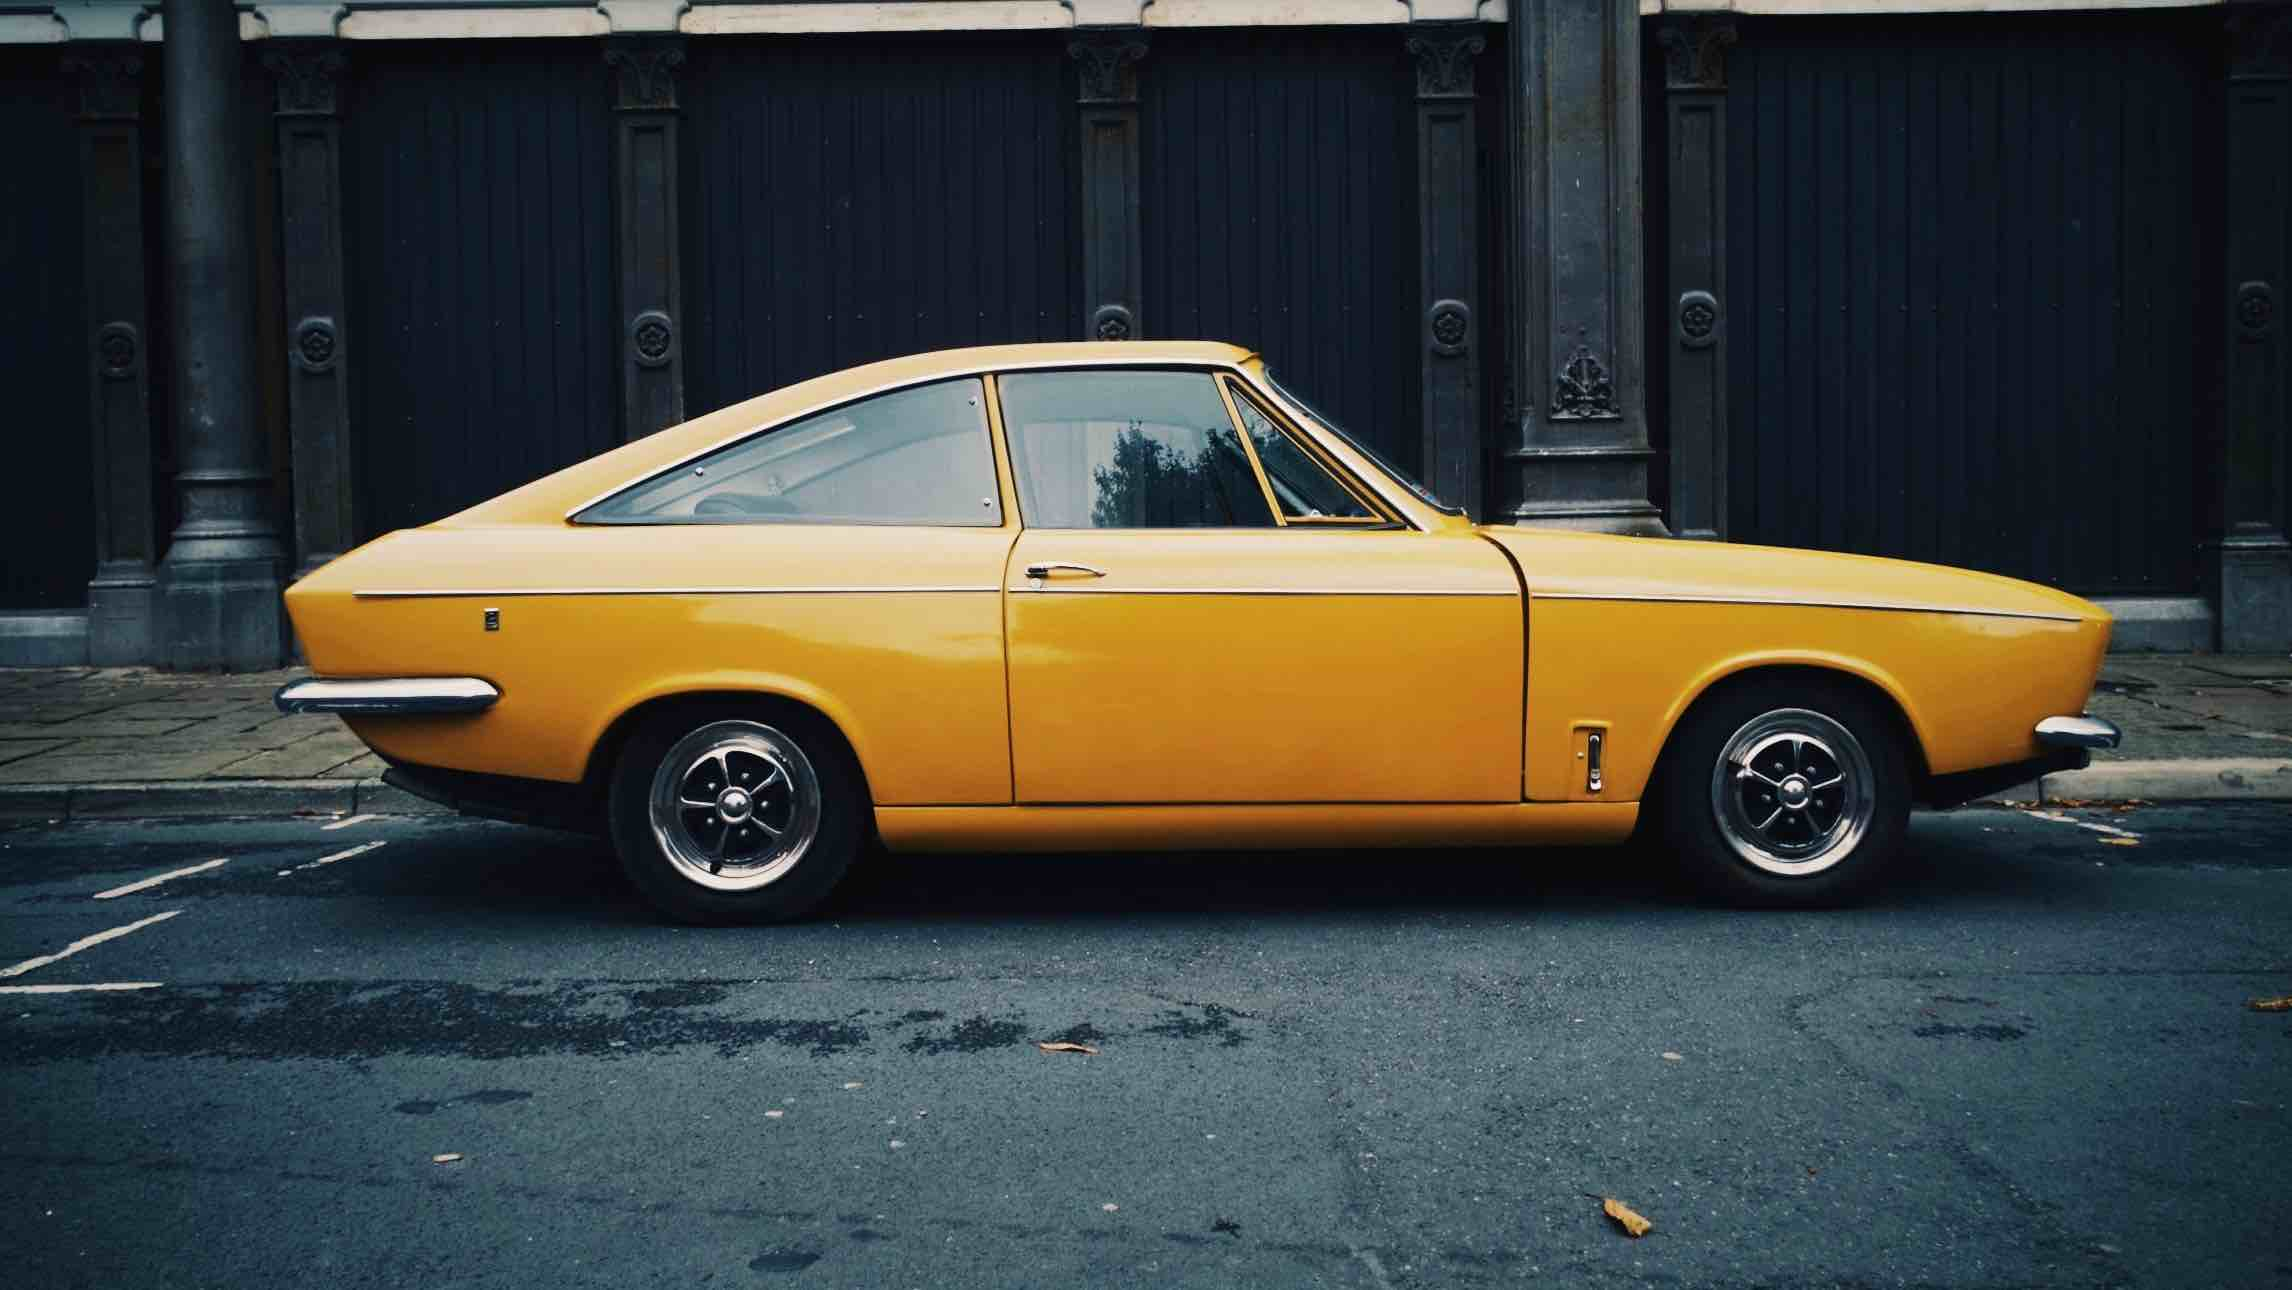 Yellow vintage car parked on street kerb with car insurance.